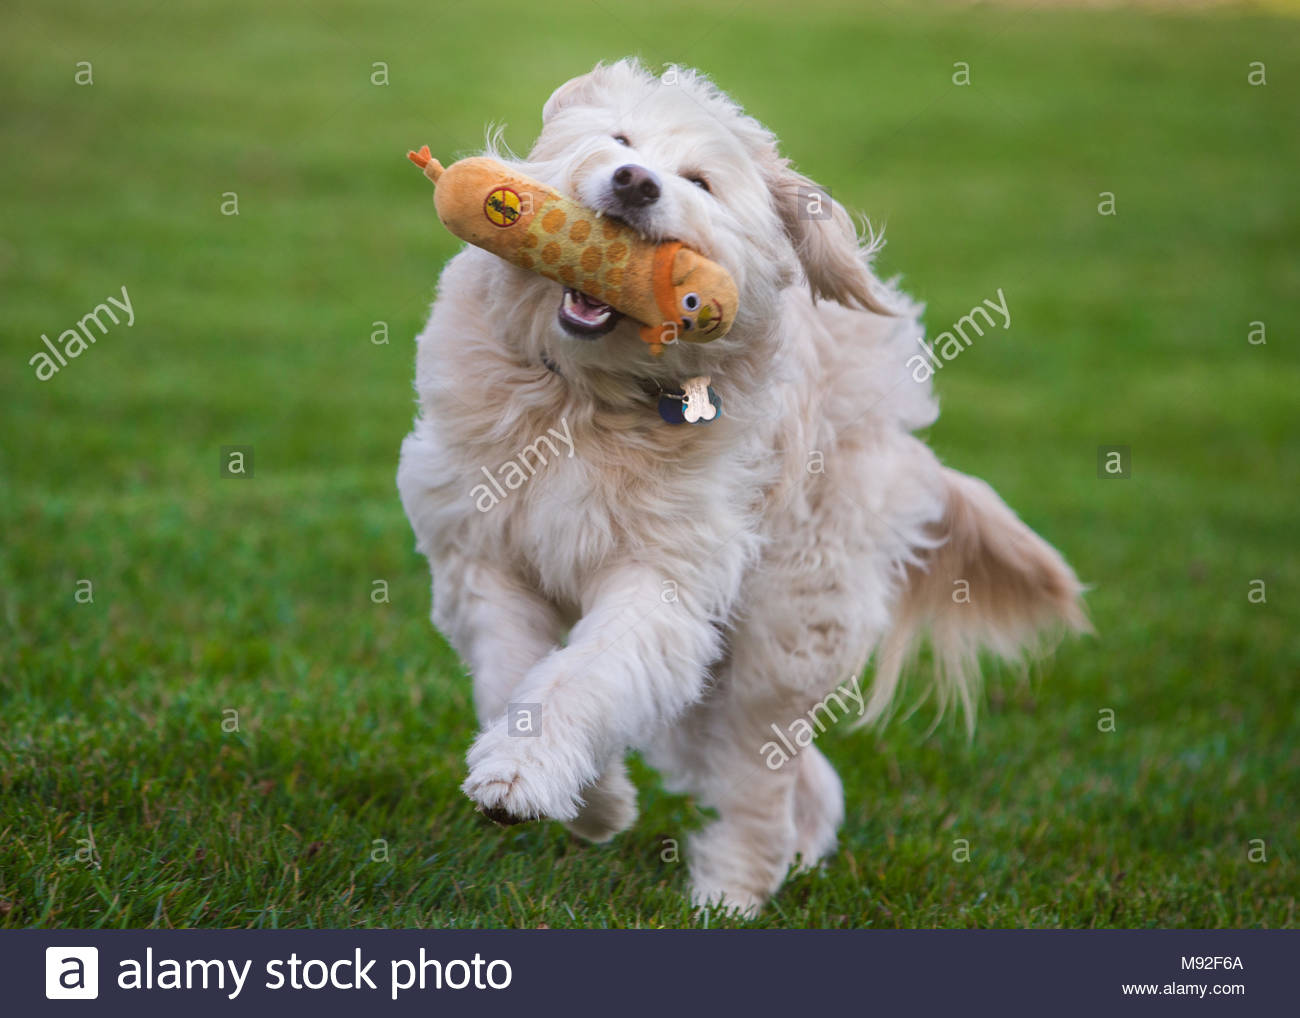 Cream-colored labrador poodle mix dog running at three-quarter angle toward camera with toy in mouth and eyes closed - Stock Image